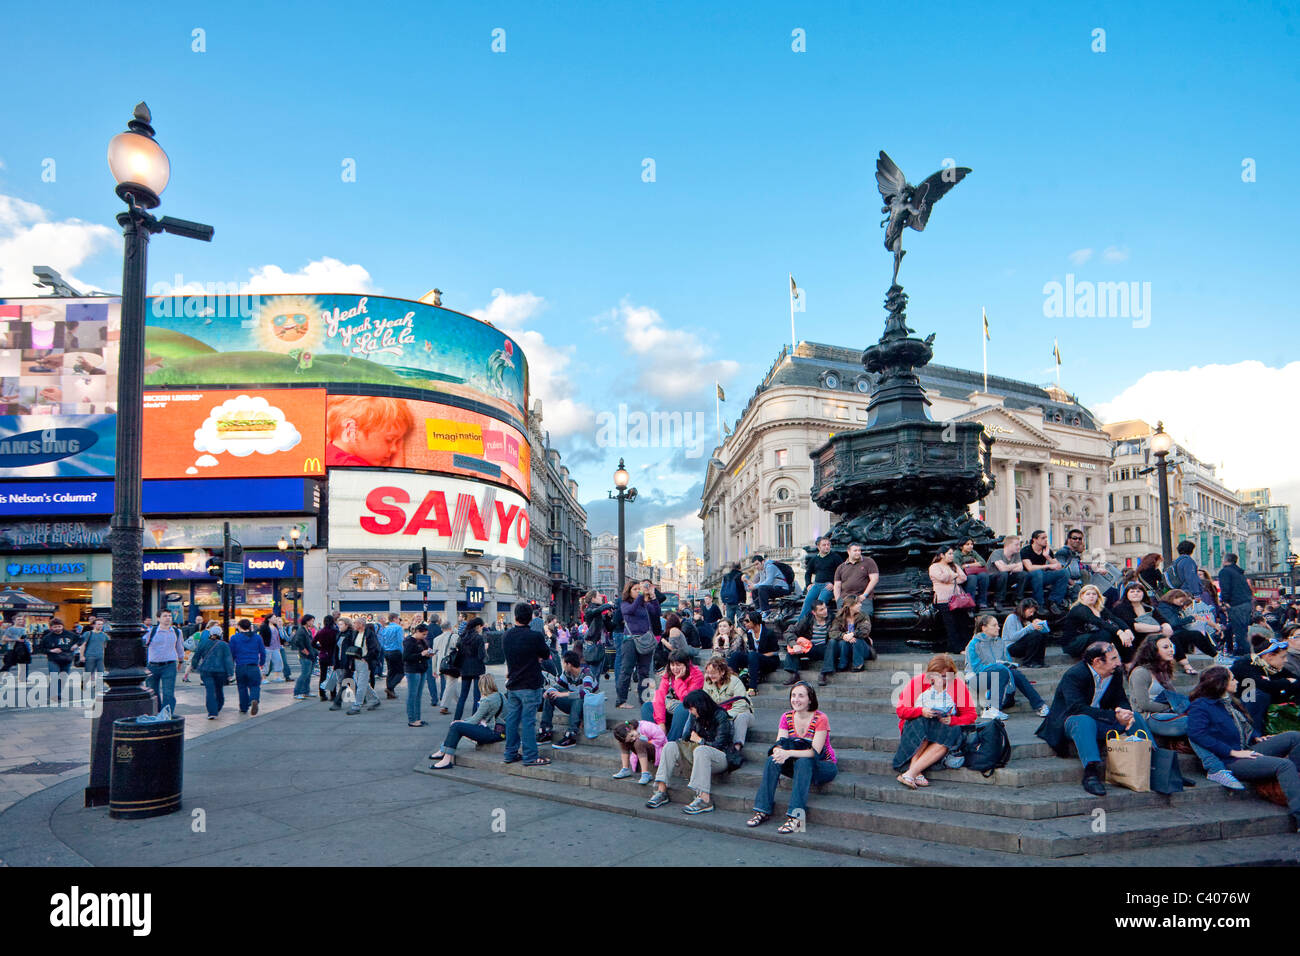 Great Britain, Europe, England, London, Piccadilly Circus, Cupid, tourist, advertisement, recruitment, - Stock Image